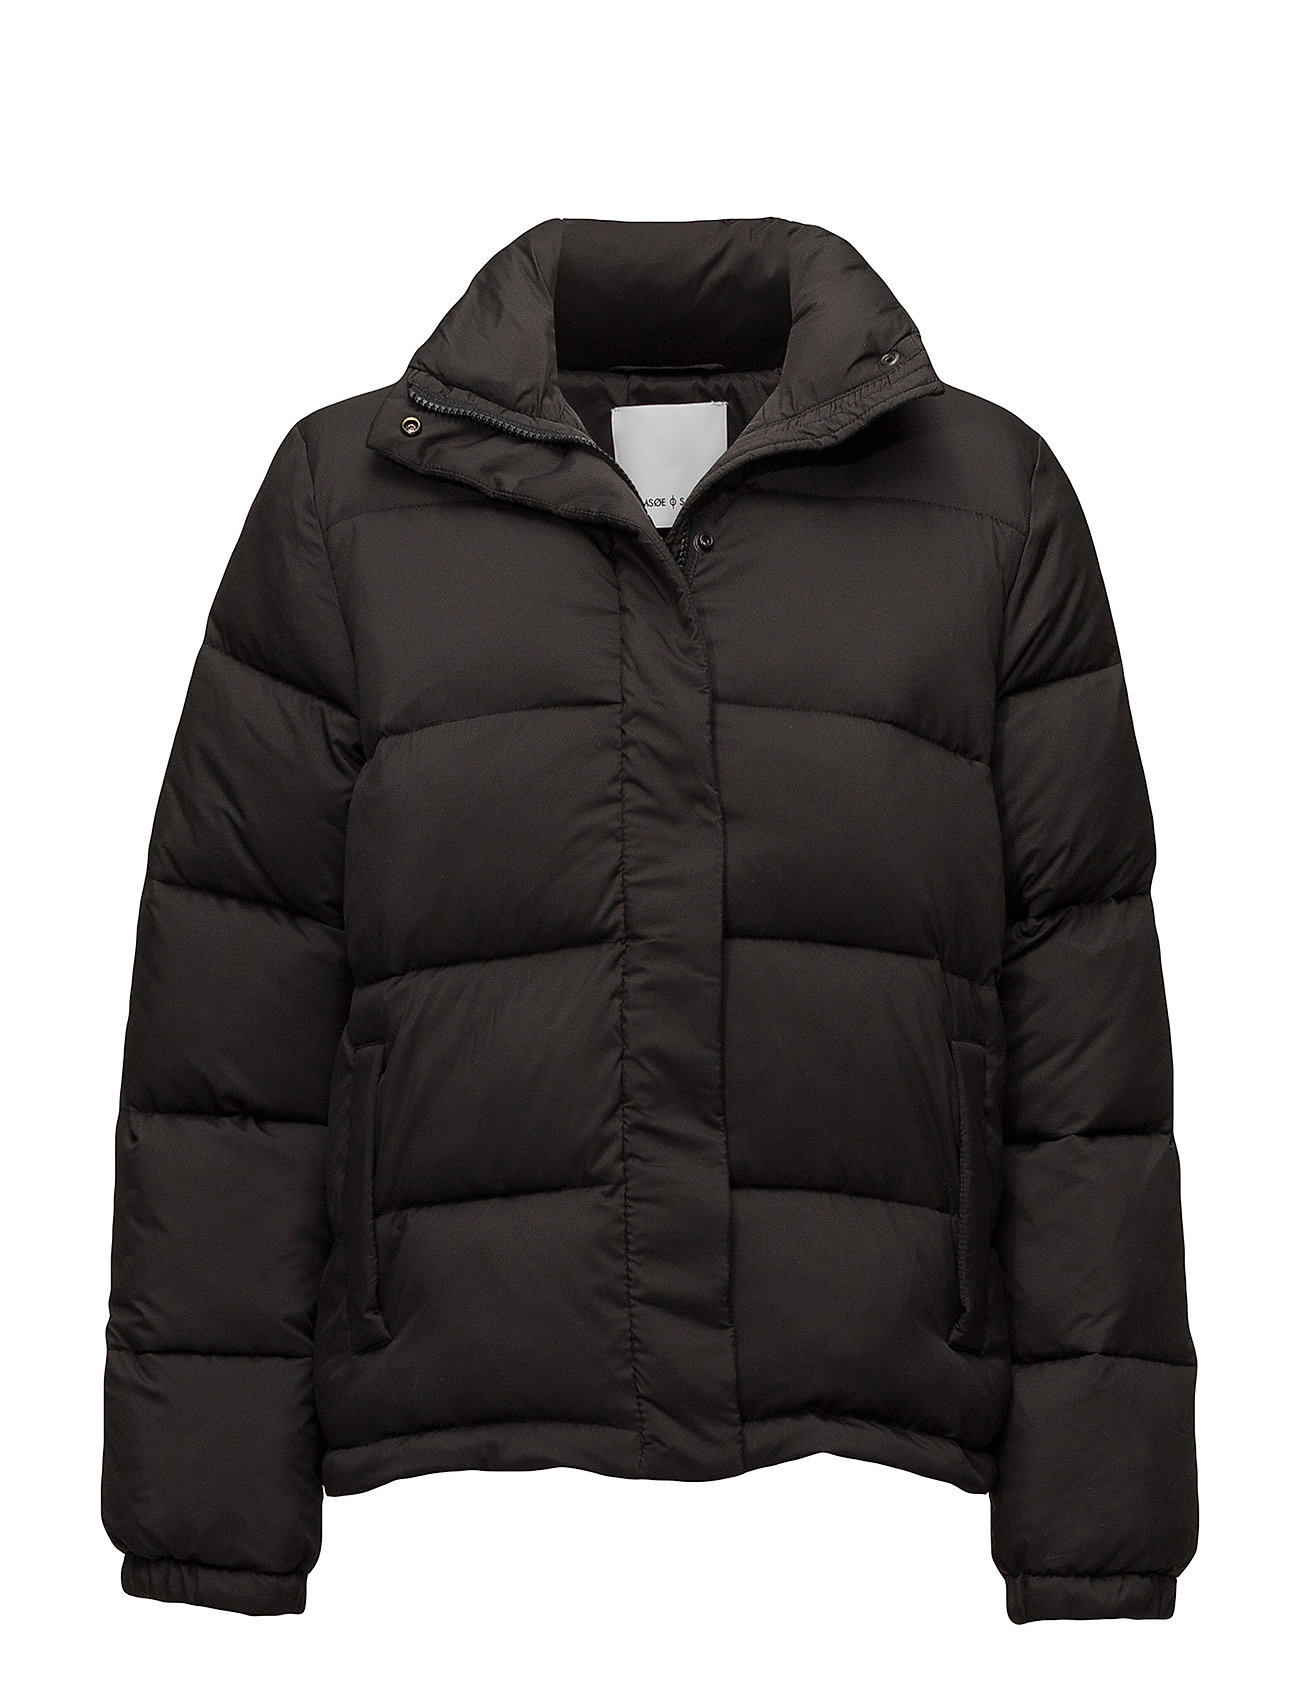 Samsøe & Samsøe Vinda jacket 10143 - BLACK